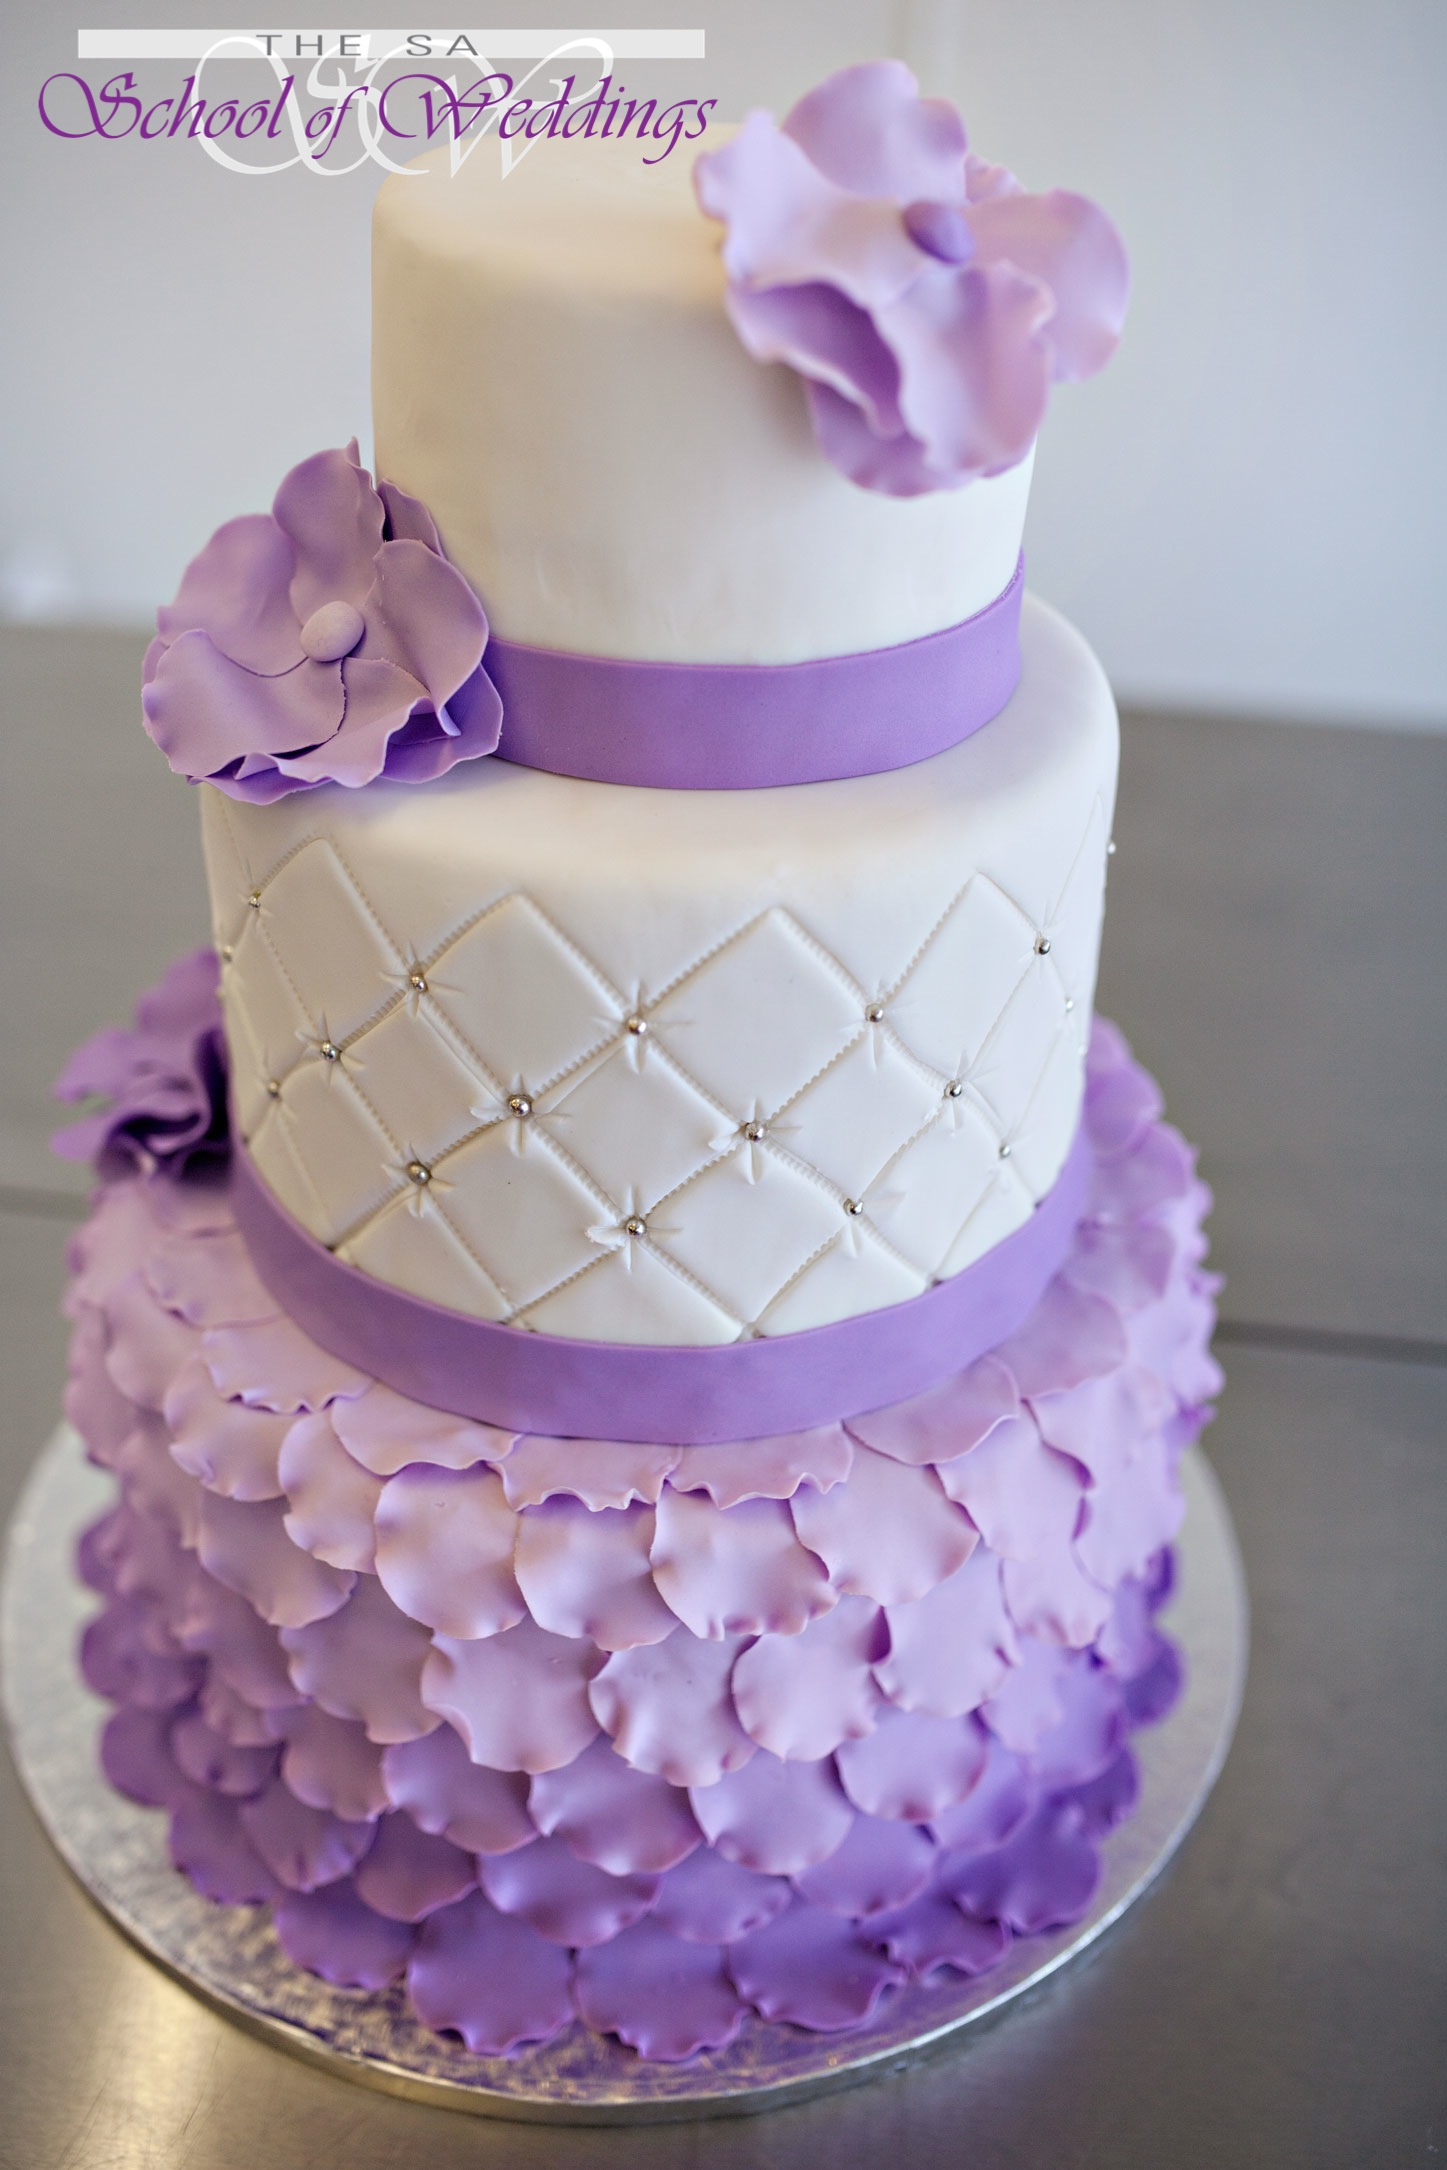 Gallery of Wedding Cakes